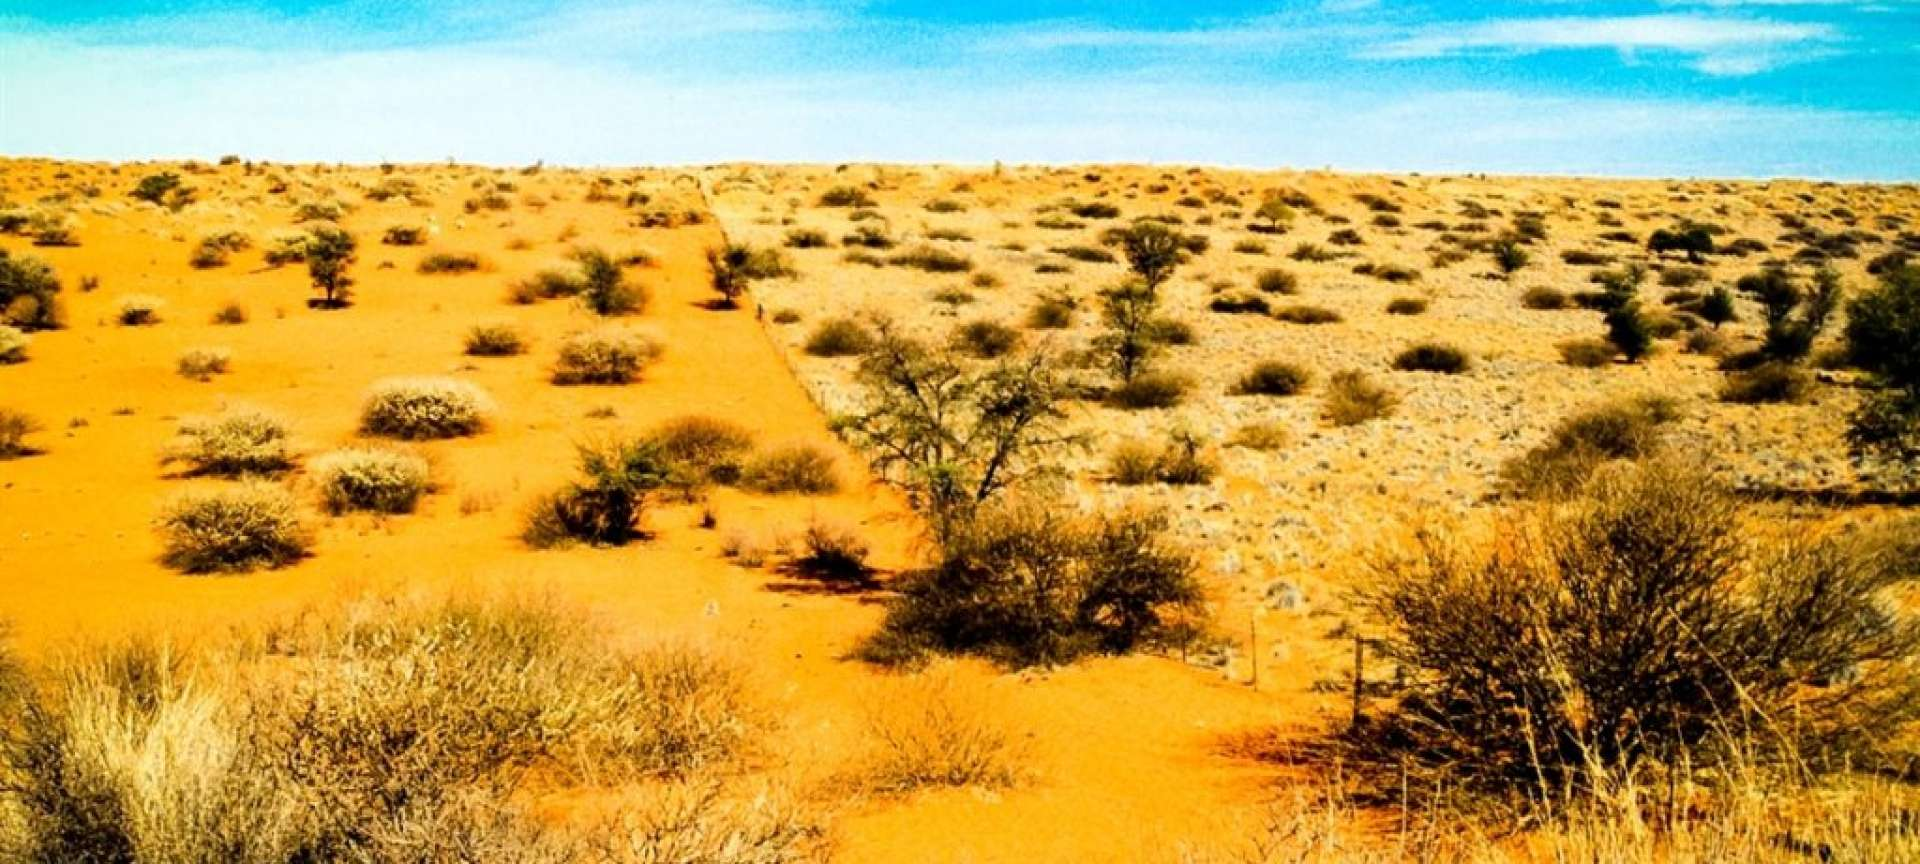 The Kalahari is a soectacular desert that teems with life